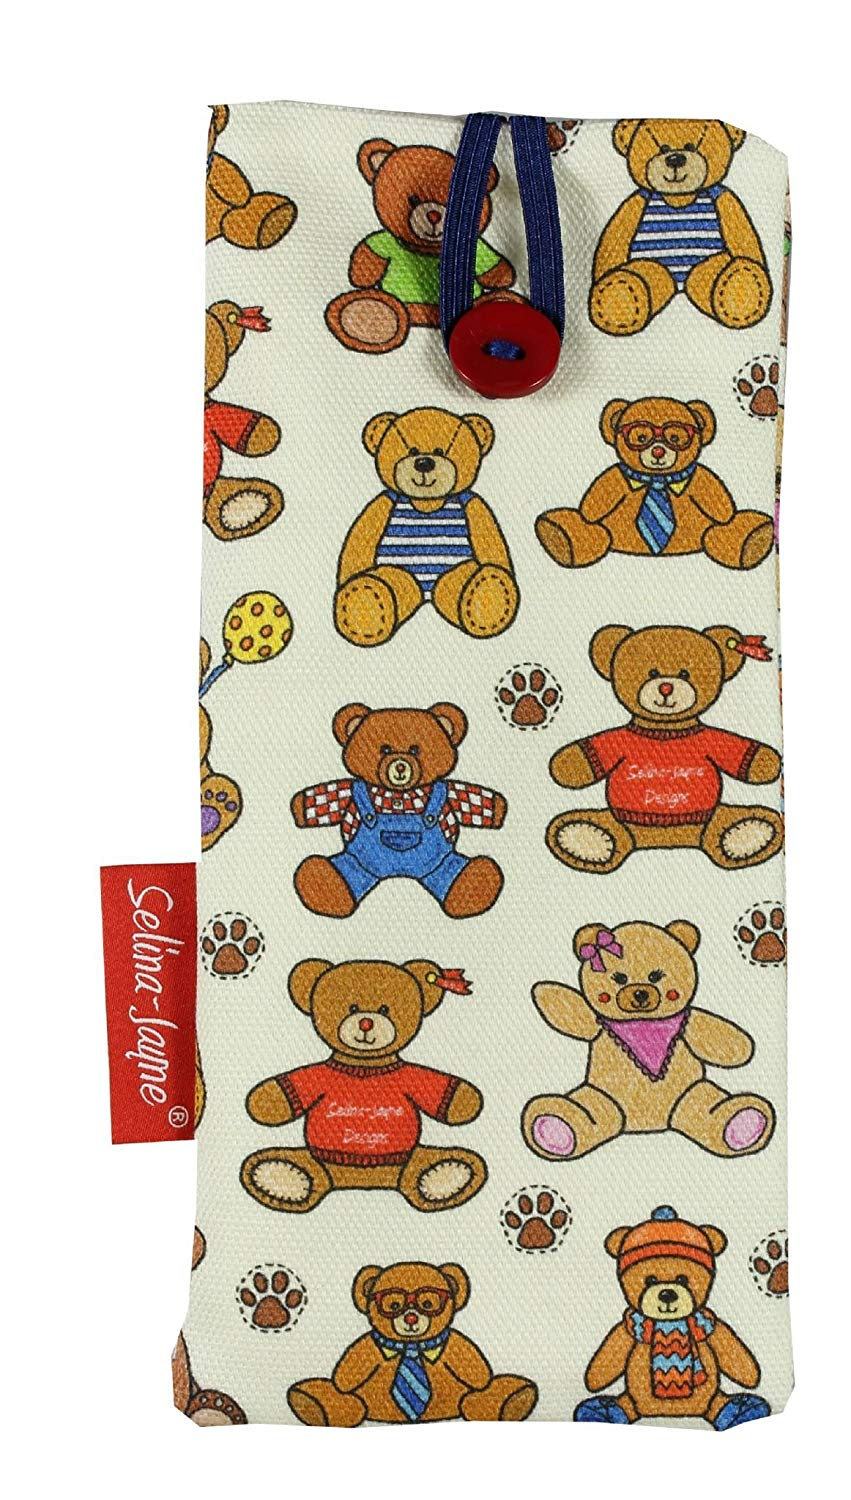 d4521128b9dd Get Quotations · Selina-Jayne Teddy Bears Limited Edition Designer Soft  Fabric Glasses Case